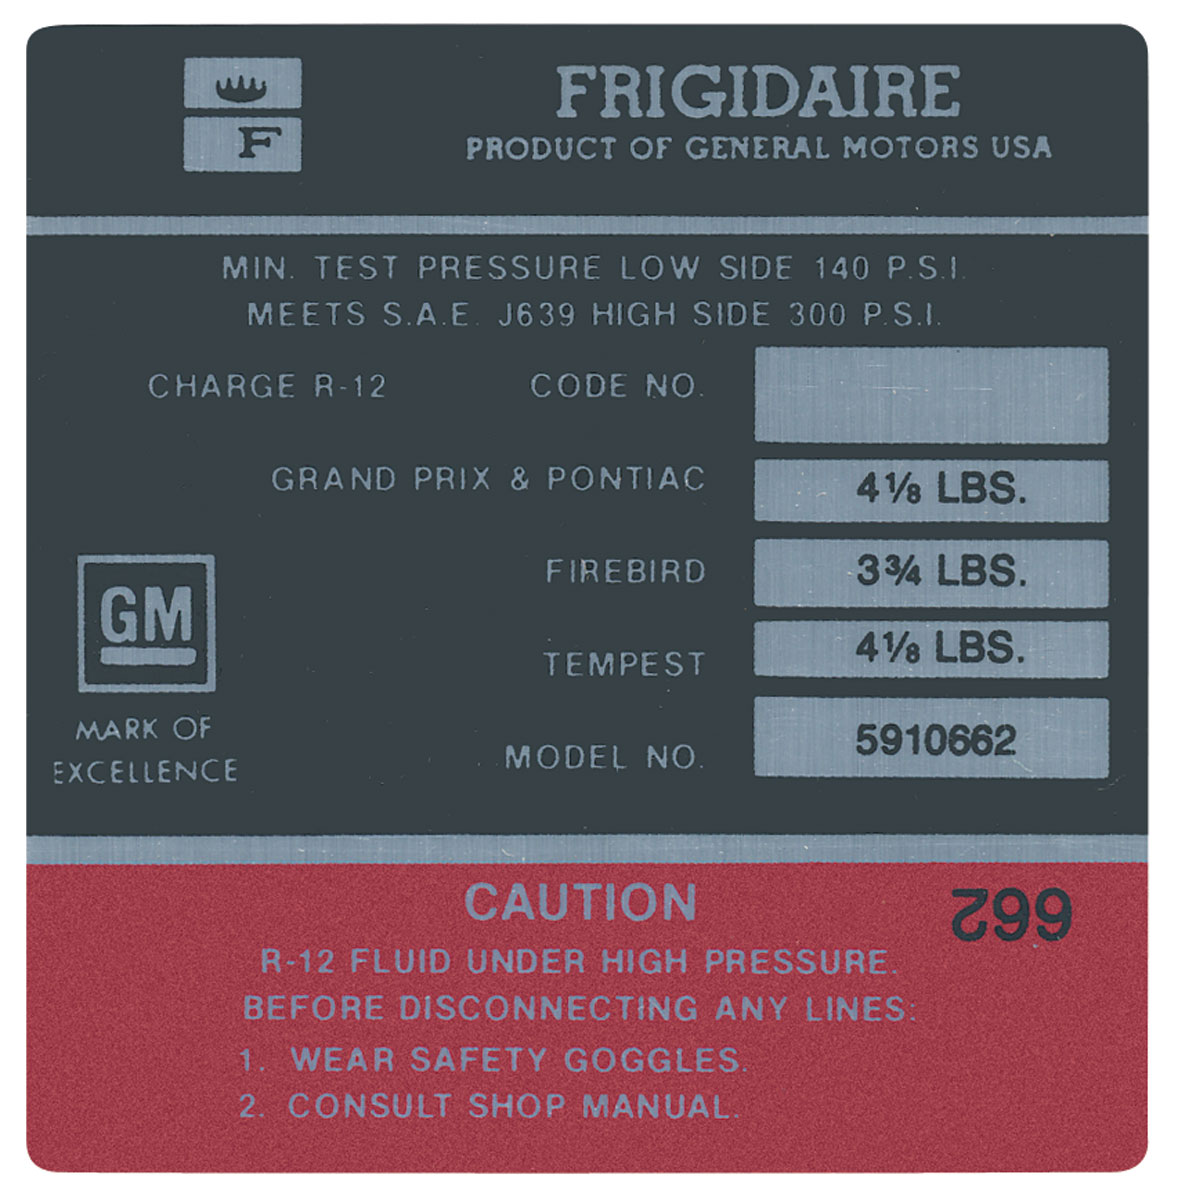 Photo of Bonneville AC Compressor Decal Frigidaire (#5910662)